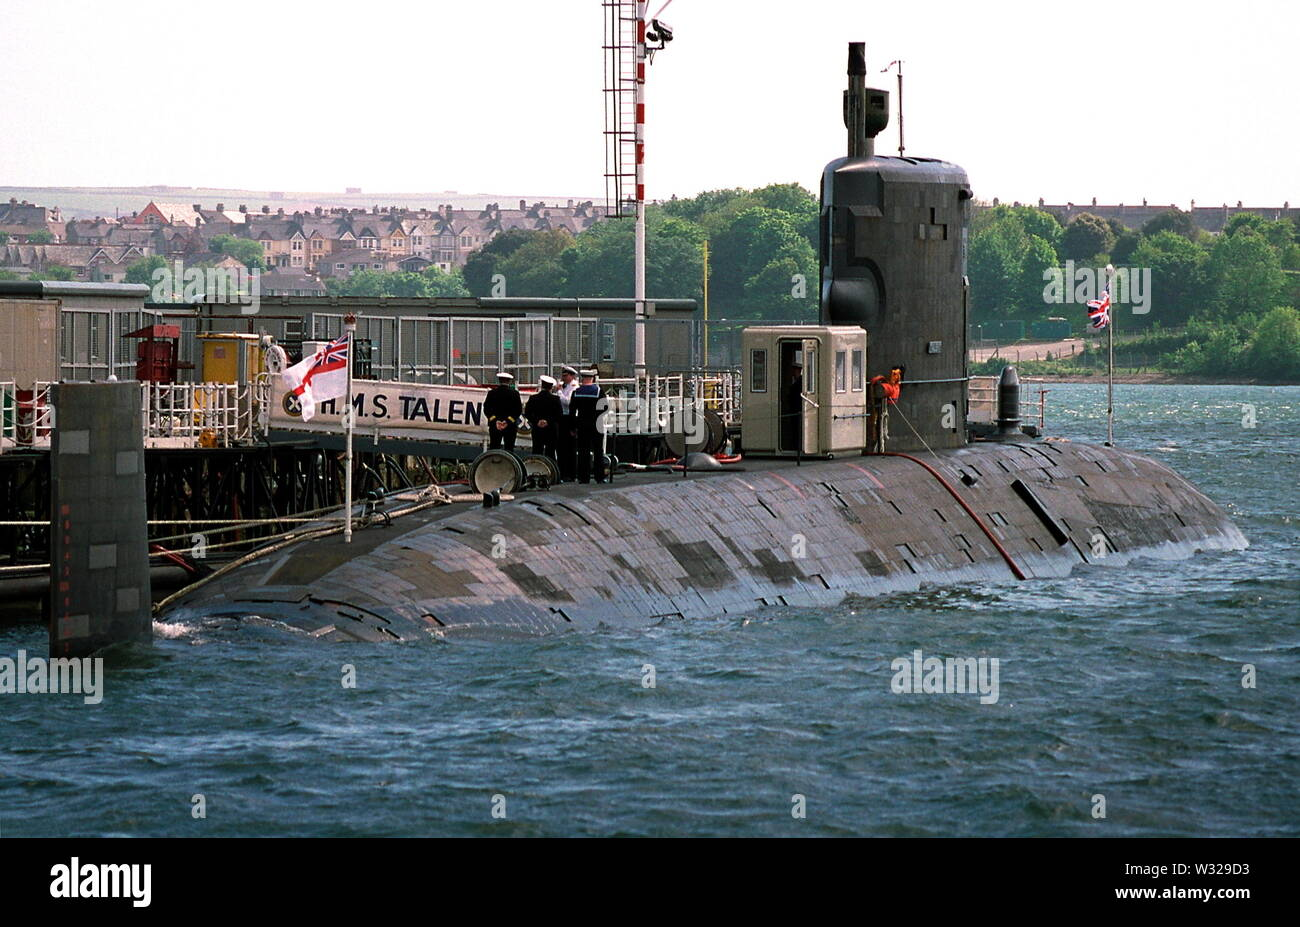 AJAXNETPHOTO. 2004. PLYMOUTH, ENGLAND. -  THE SUBMARINE HMS TALENT MOORED AT DEVONPORT.  